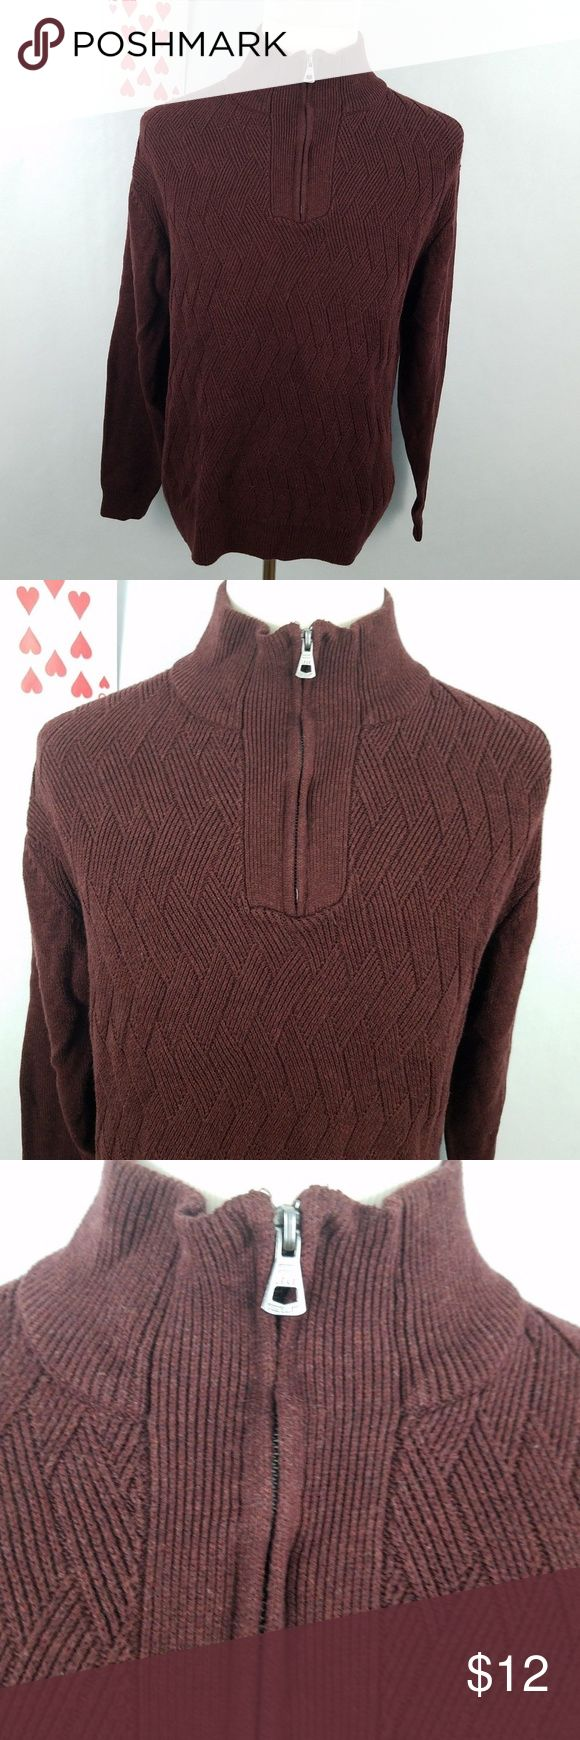 "Weatherproof mens size XL sweater partial zip  brown cable knit  half turtleneck Armpit to armpit - 24"" Length - 28"" Smoke-free home Item bb8 Weatherproof Sweaters Turtleneck"